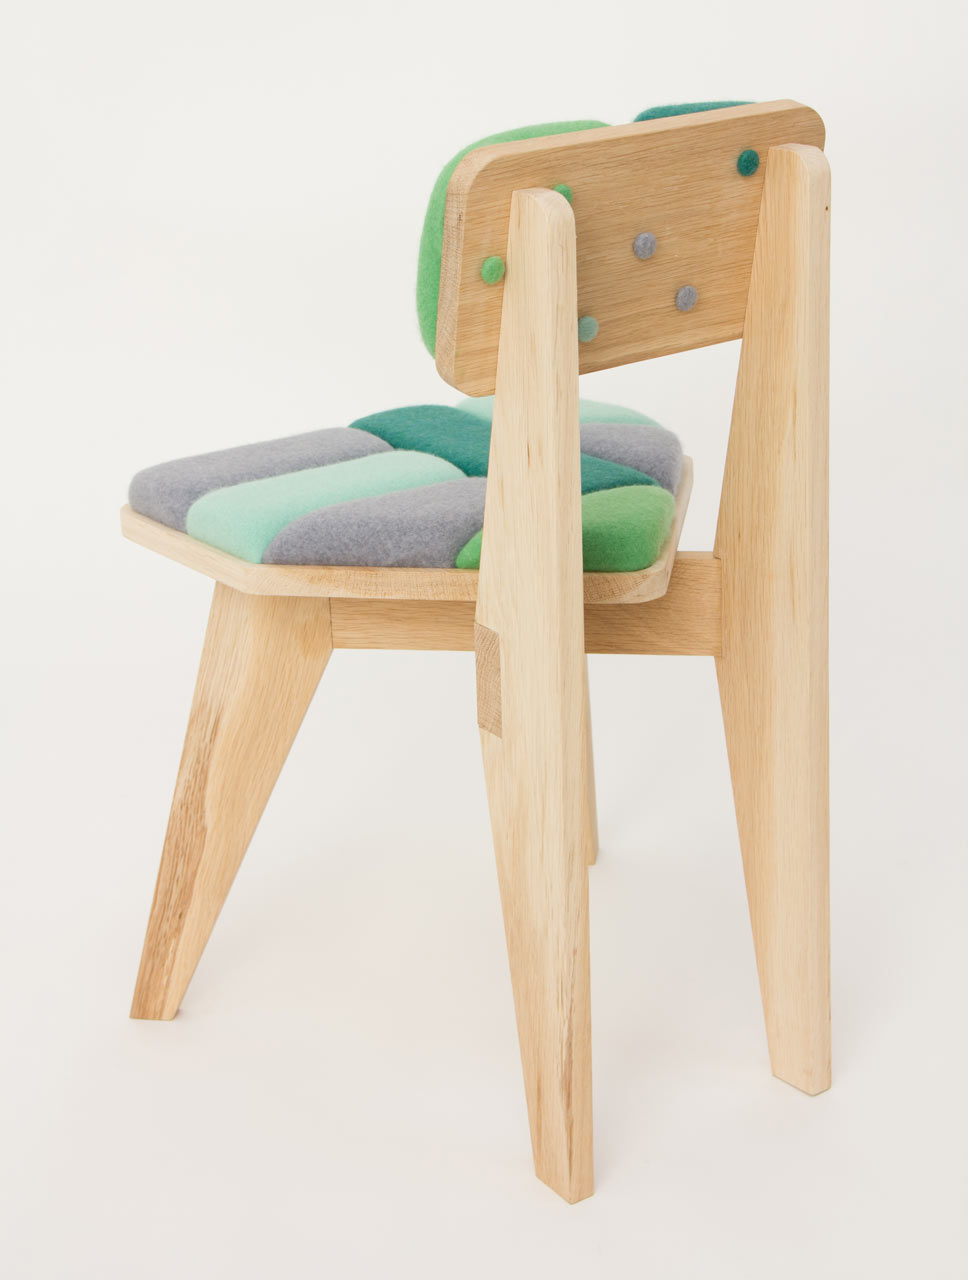 Windworks-Collection-Merel-Karhof-8-green-chair